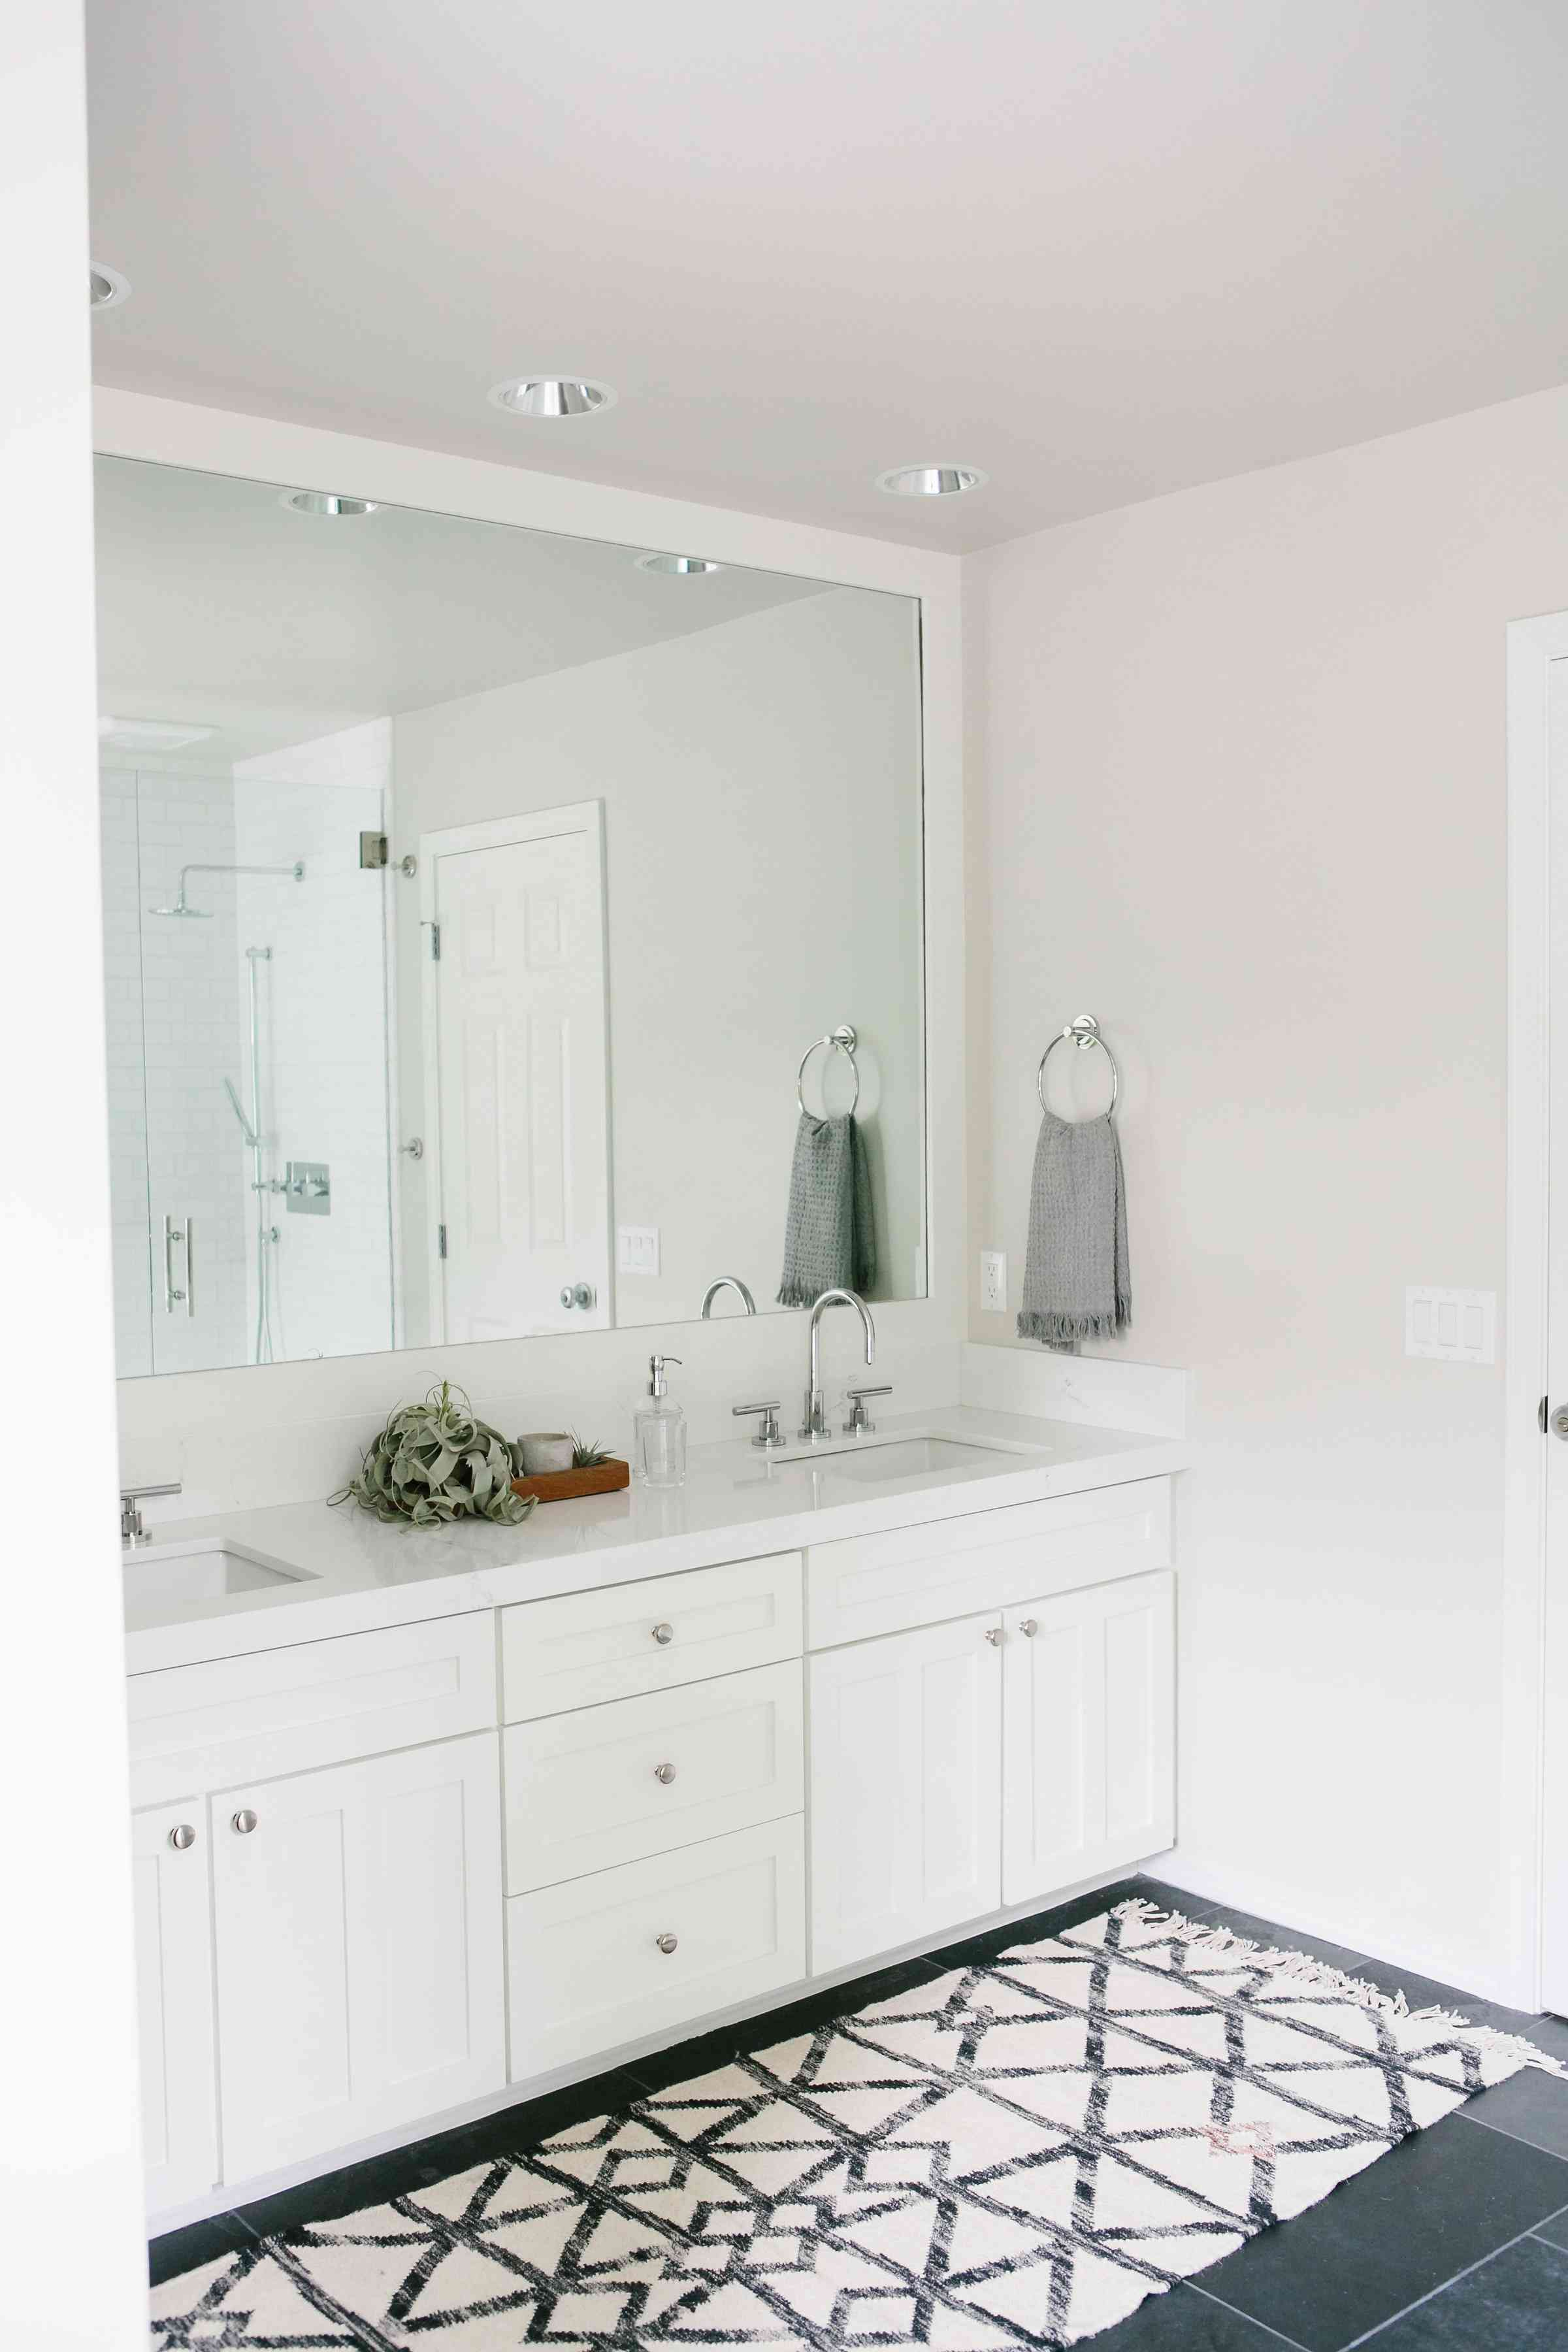 Bathroom painted in classic gray